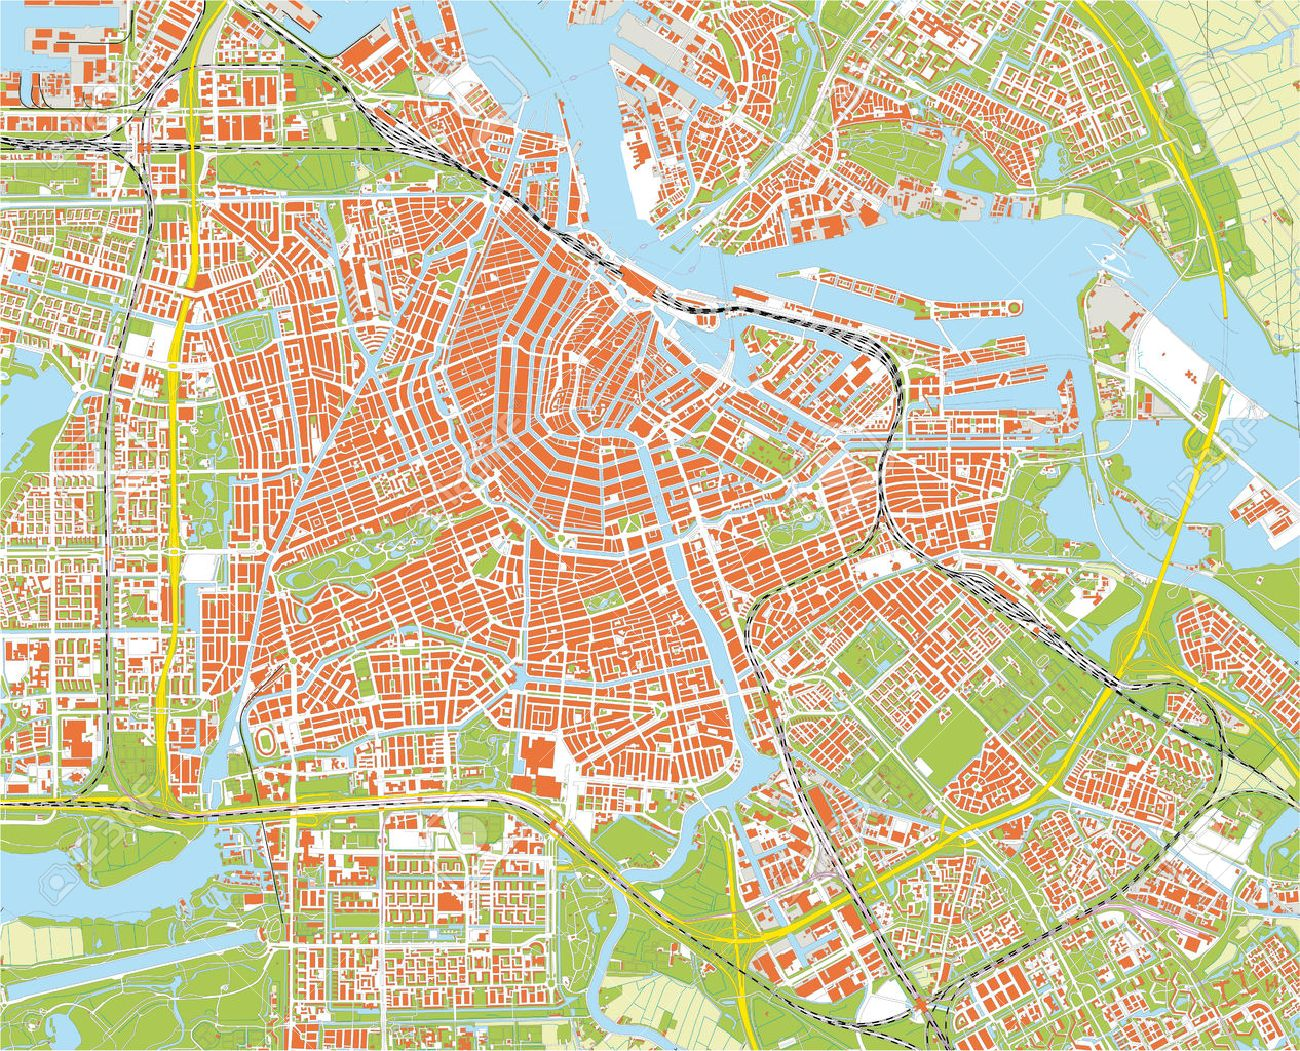 Cartina Amsterdam Download.Amsterdam City Map Royalty Free Cliparts Vectors And Stock